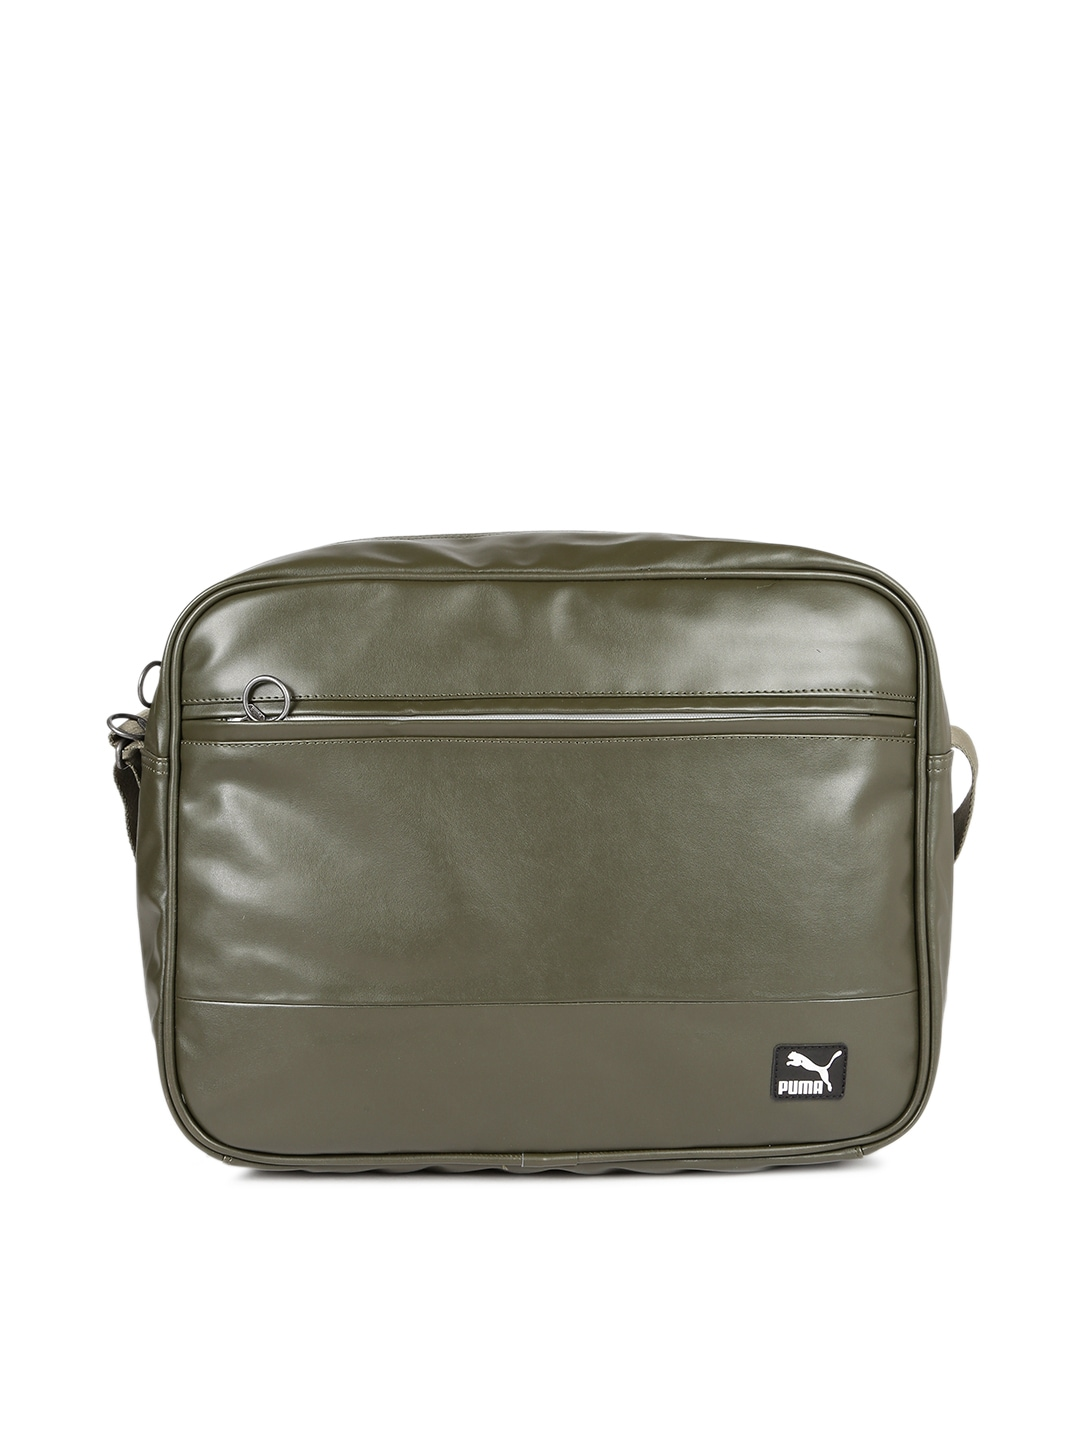 99d30118f4 Puma Bags For Men Tablet Sleeve - Buy Puma Bags For Men Tablet Sleeve  online in India